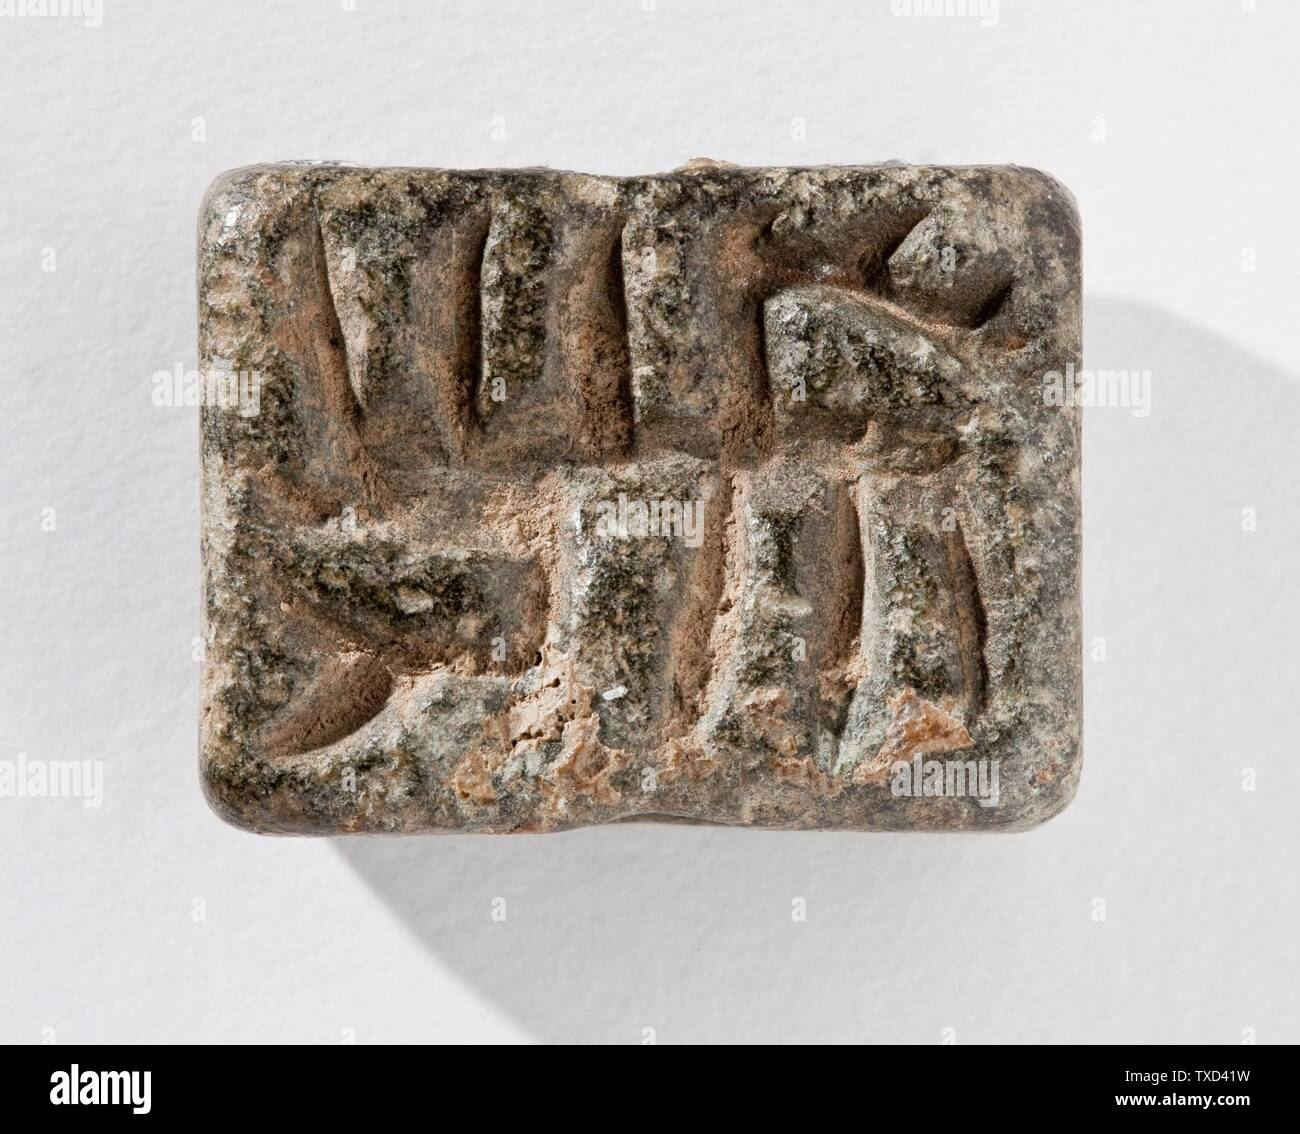 """Stamp Seal, Tabloid (image 2 of 2); Tools and Equipment; seals Gray serpentine Height:  1/2 in. (1.2 cm); Width:  15/16 in. (2.24 cm); Length:  1 3/16 in. (3 cm) Gift of Nasli M. Heeramaneck (M.76.174.512) Art of the Ancient Near East; between circa 3500 and circa 3100 date QS:P571,+3500-00-00T00:00:00Z/6,P1319,+3500-00-00T00:00:00Z/9,P1326,+3100-00-00T00:00:00Z/9,P1480,Q5727902 B.C.; "" Stock Photo"